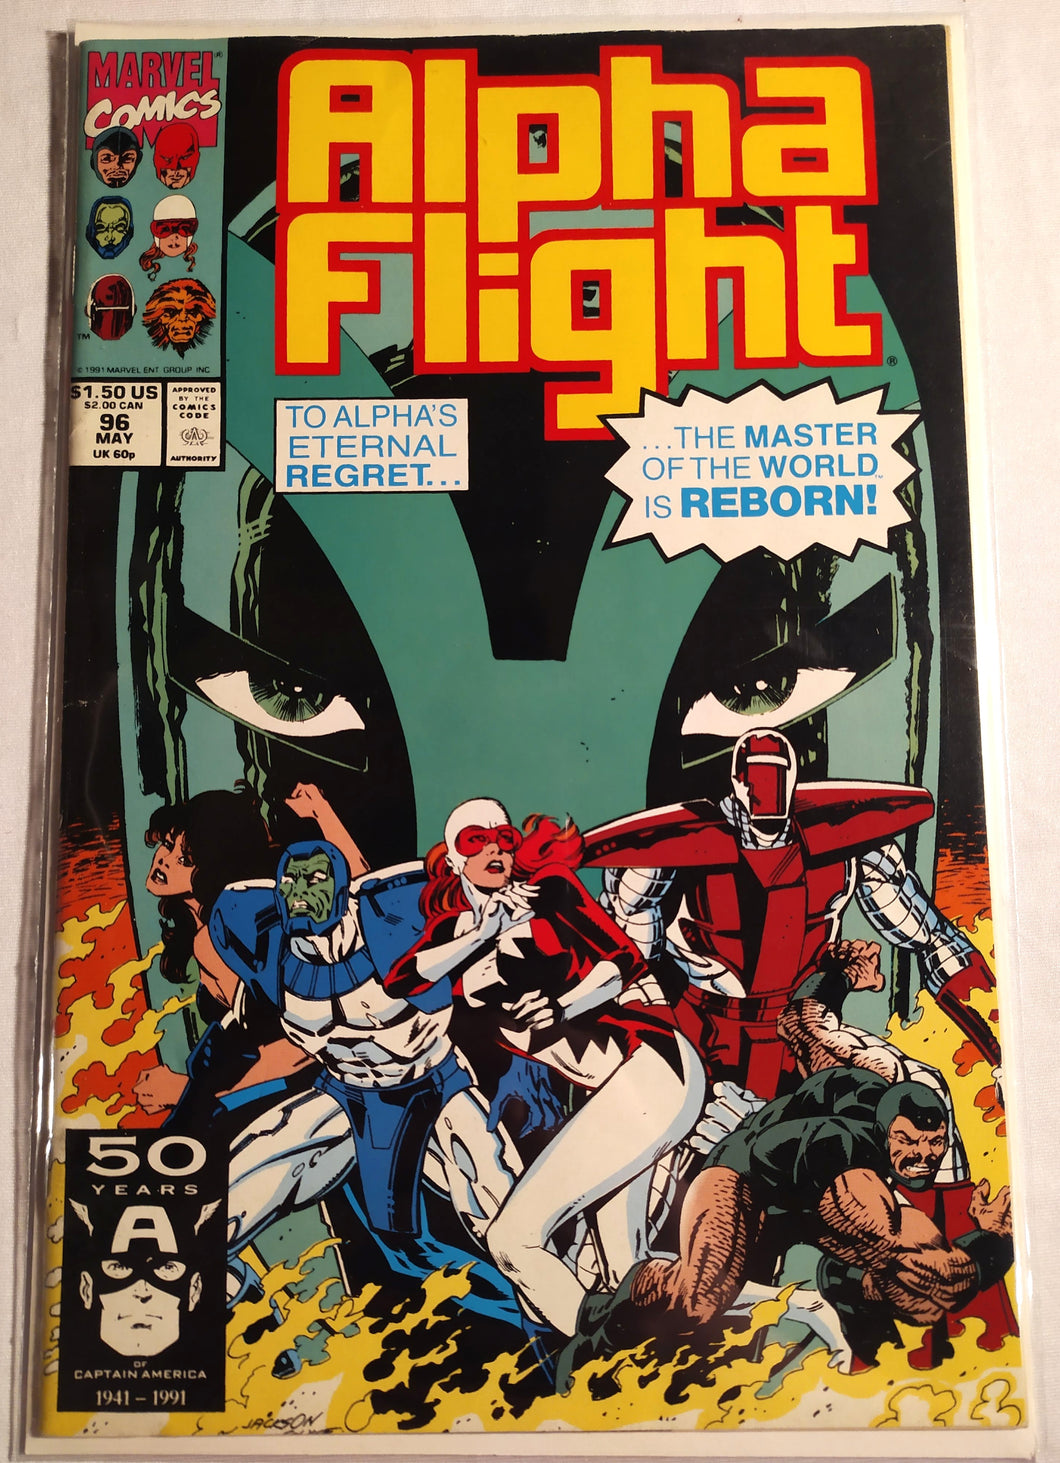 Alpha Flight #96 - The Master of The World is Reborn!